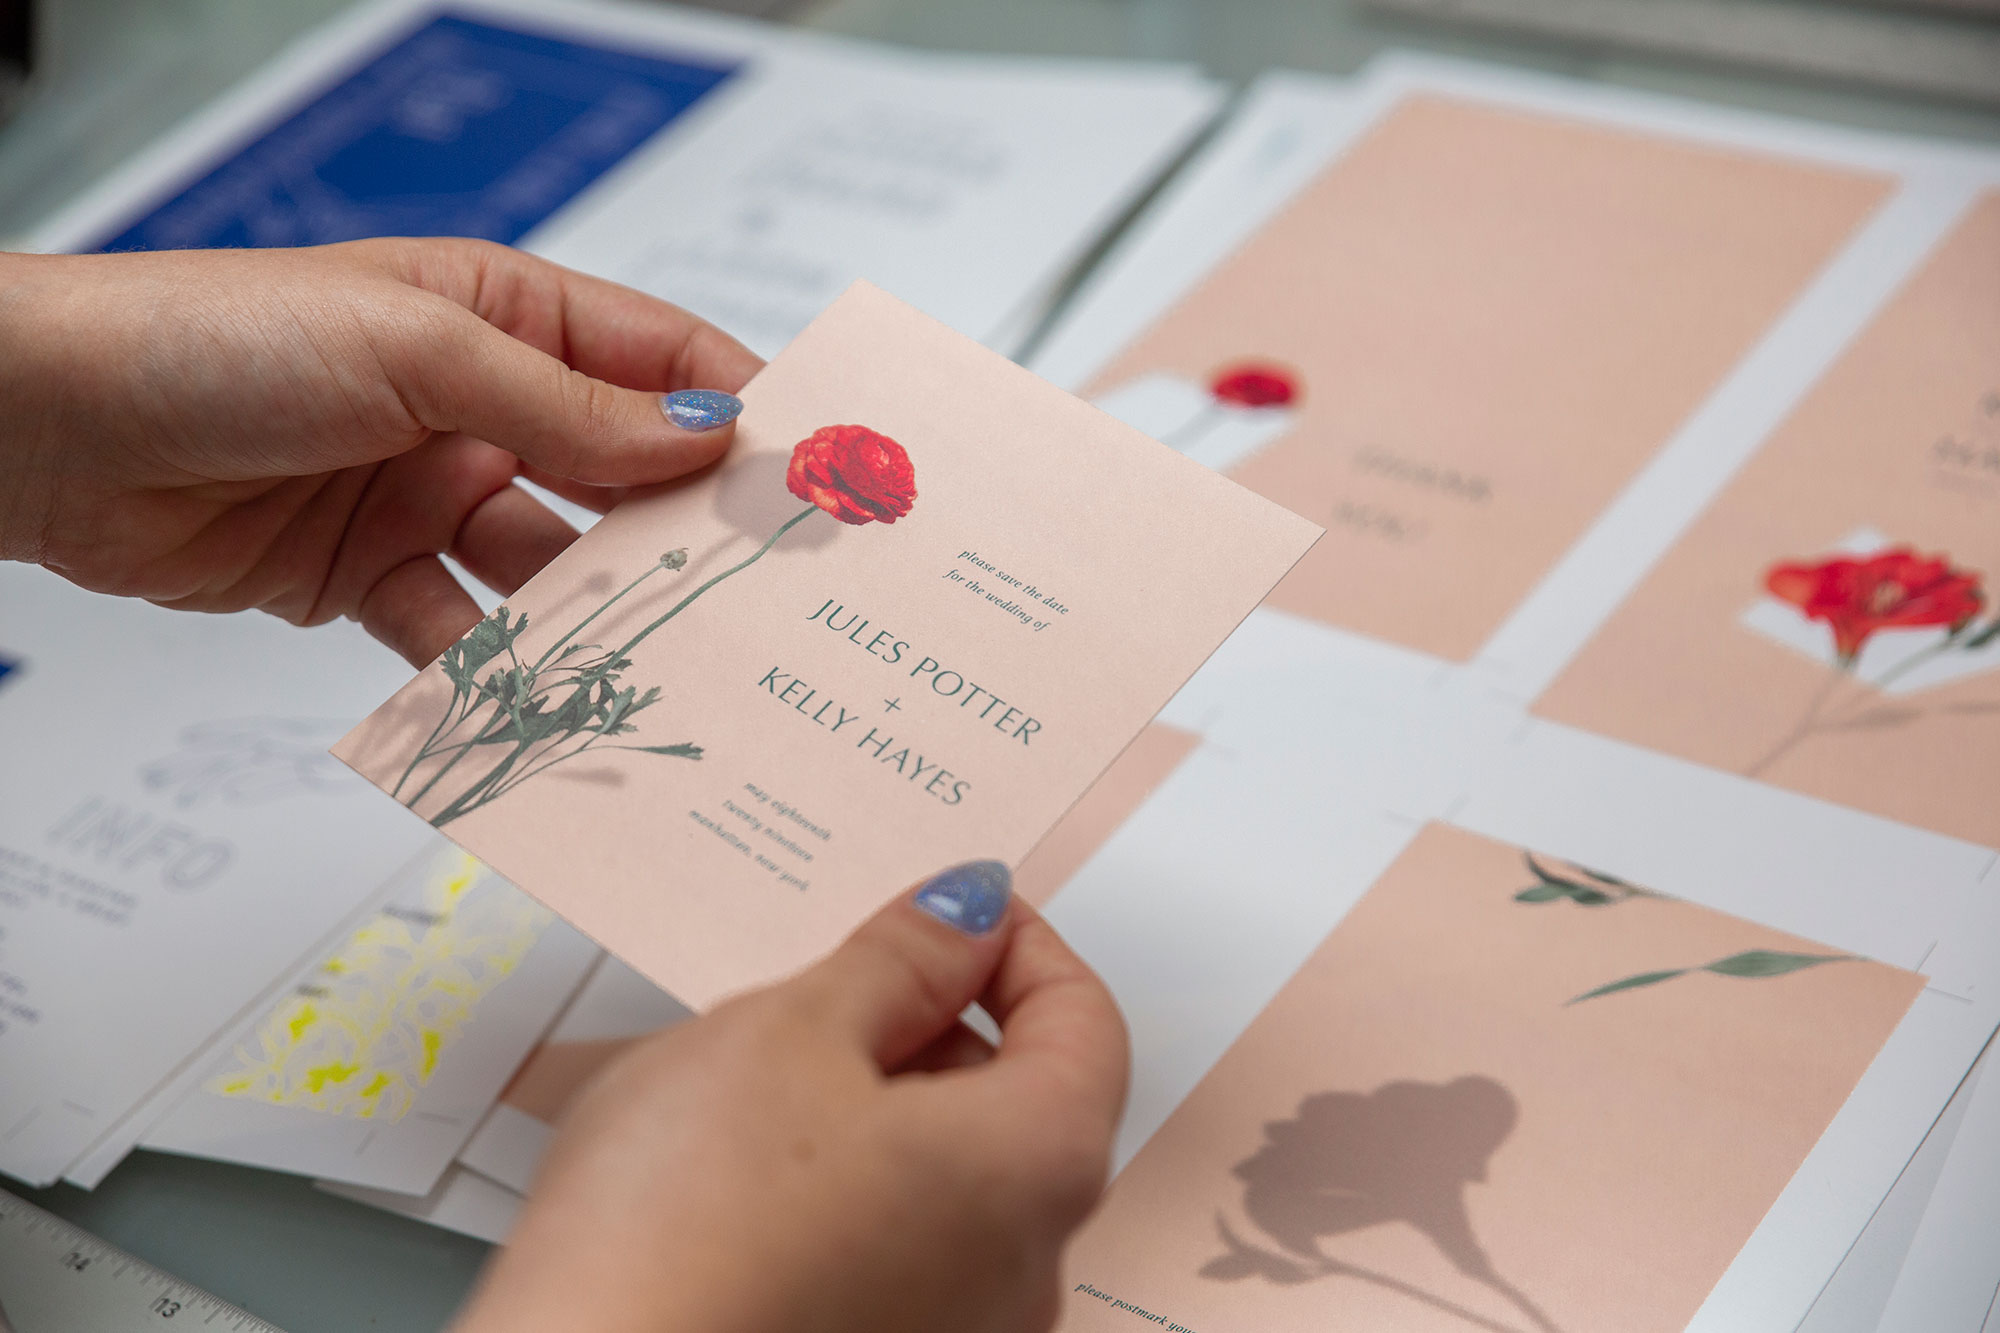 Natalie doing a press check on flor wedding invitation suite design for eco-friendly stationery studio ephemora